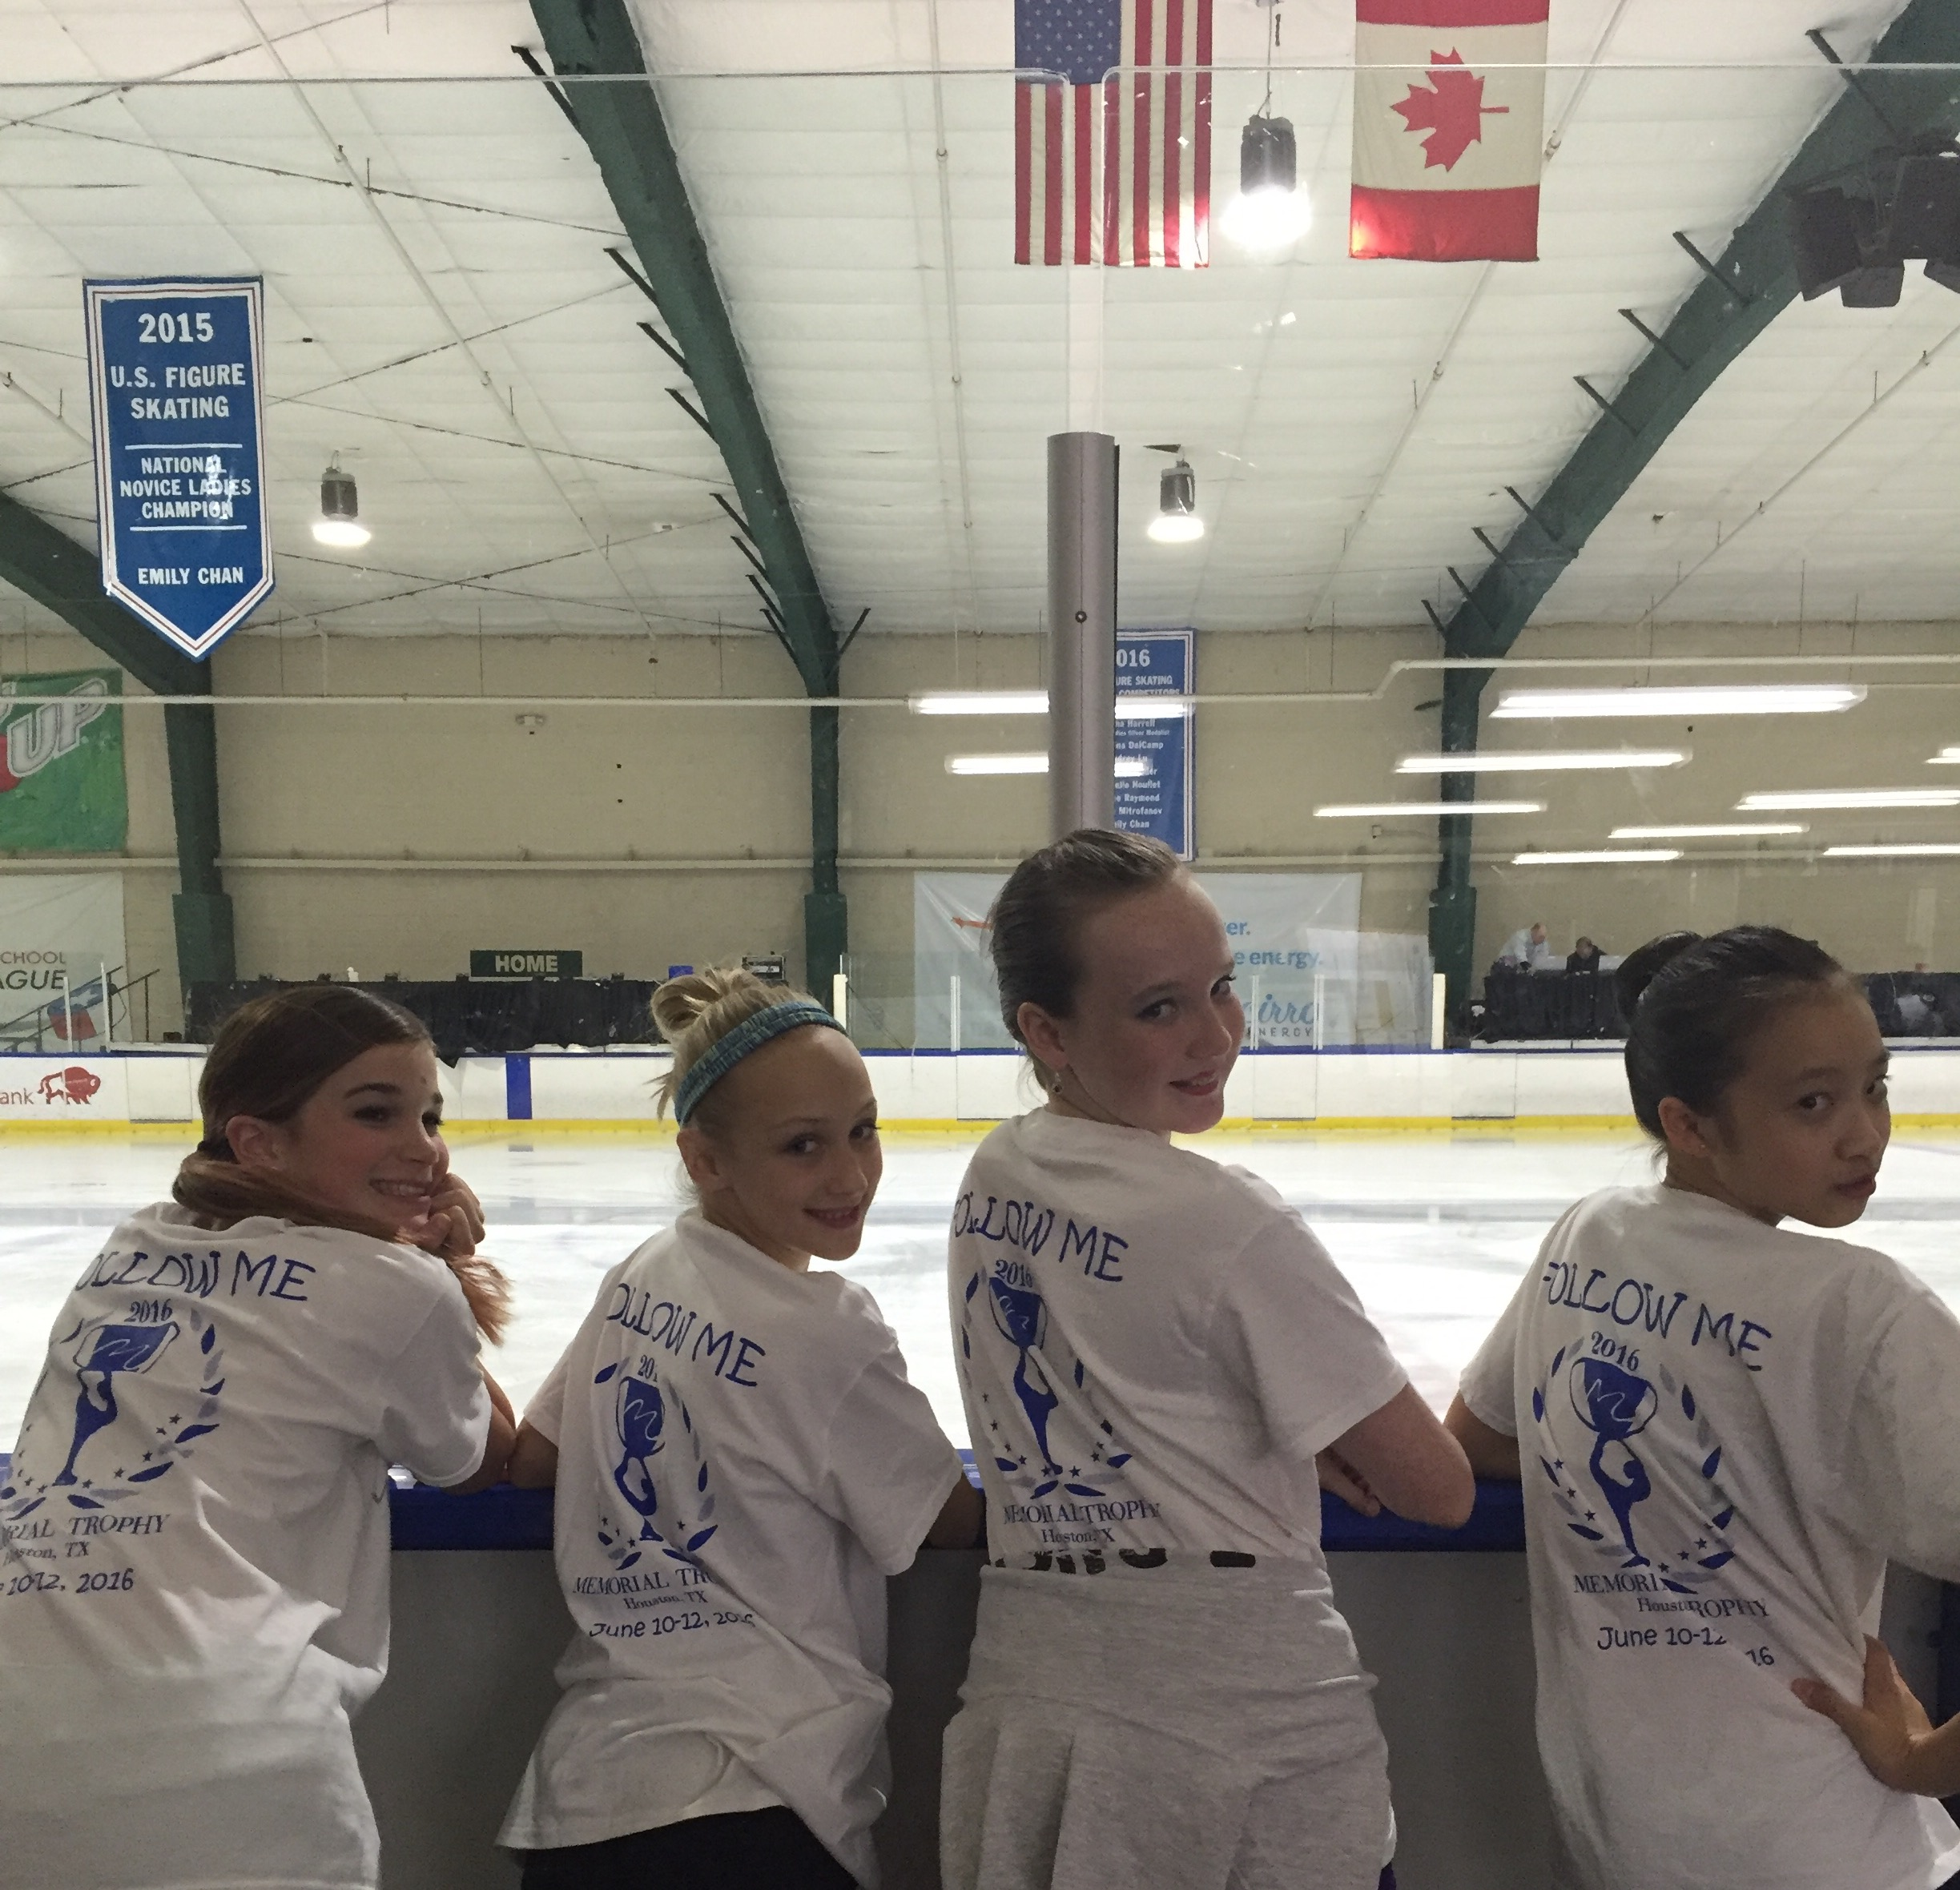 Custom T Shirts For Follow Me To 3016 Memorial Trophy Figure Skating